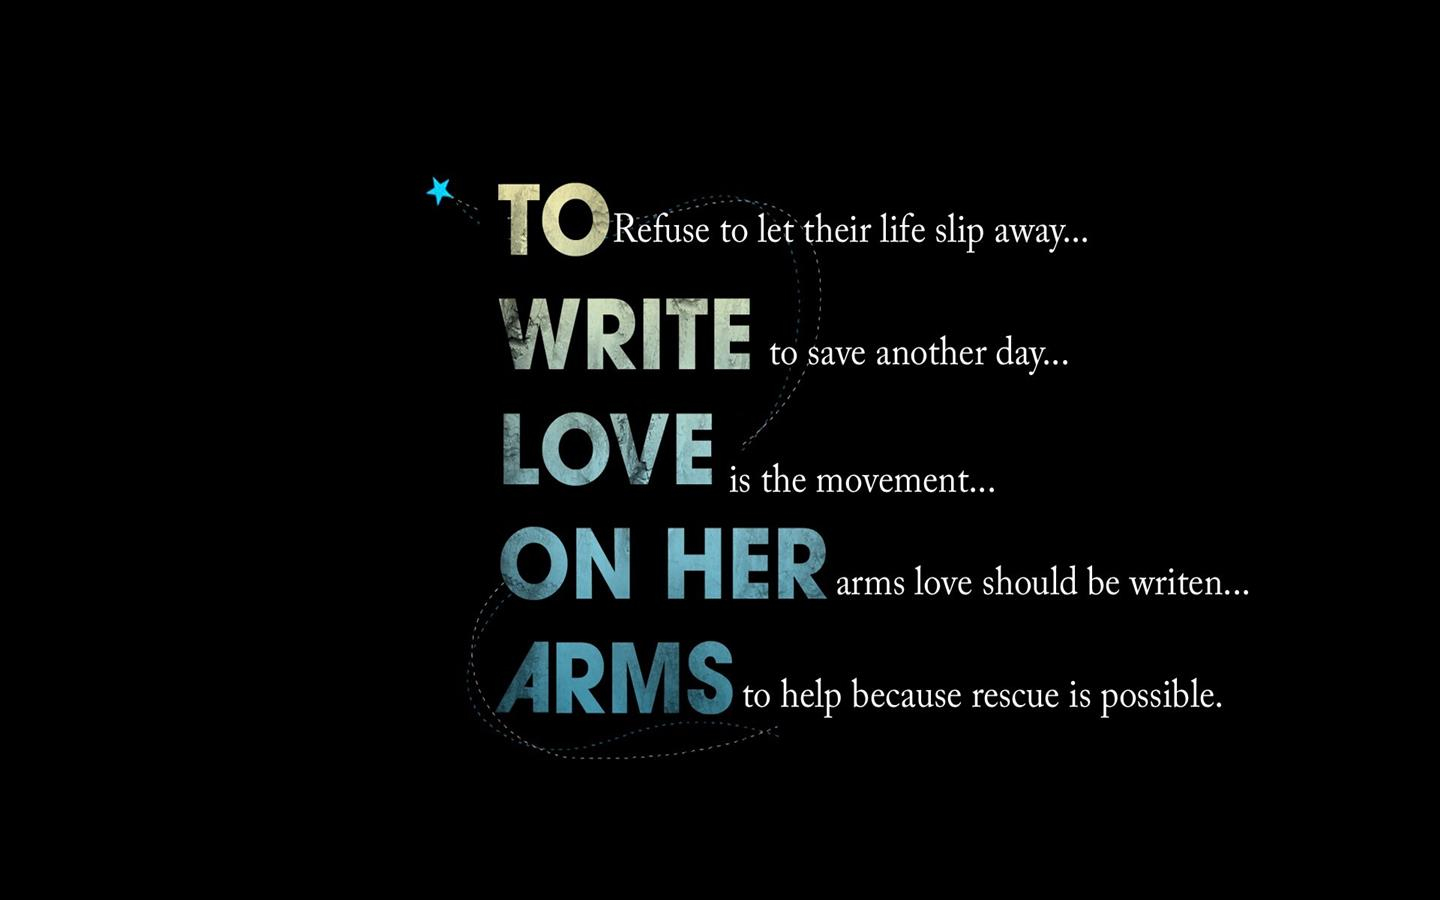 1440x900 New Latest Thoughts and Quotes on Love Image Background